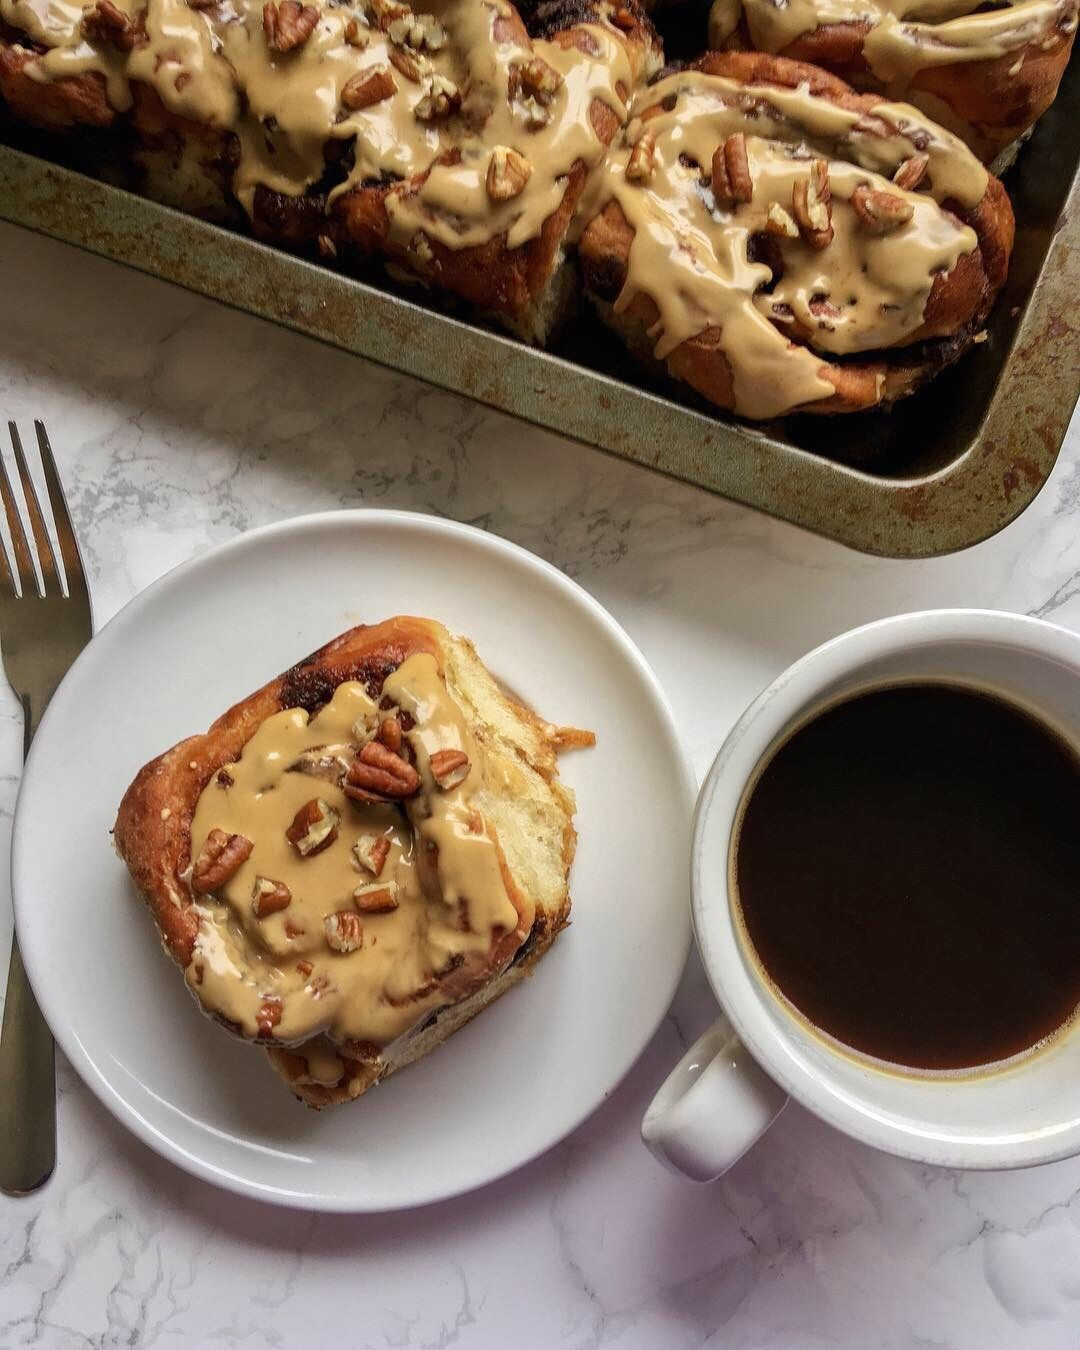 Soft, Fluffy Sticky Buns Filled With A Brown Sugar